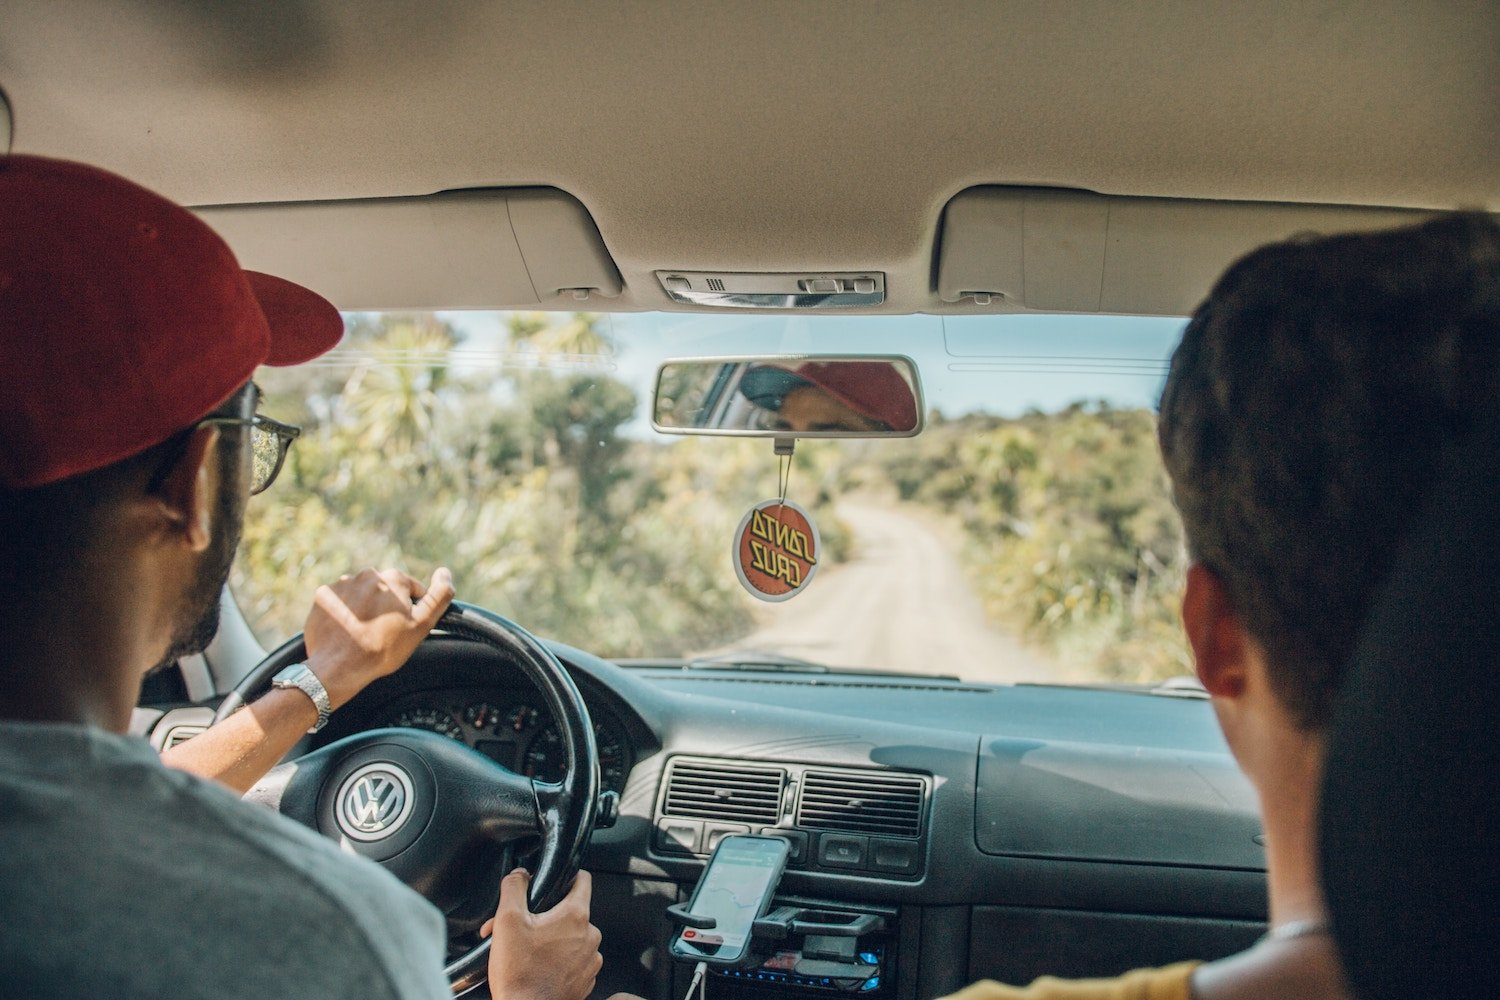 Texas Drivers License Requirements For 18 Year Olds >> Auto-Related News, Trends, & Tips - I Drive Safely